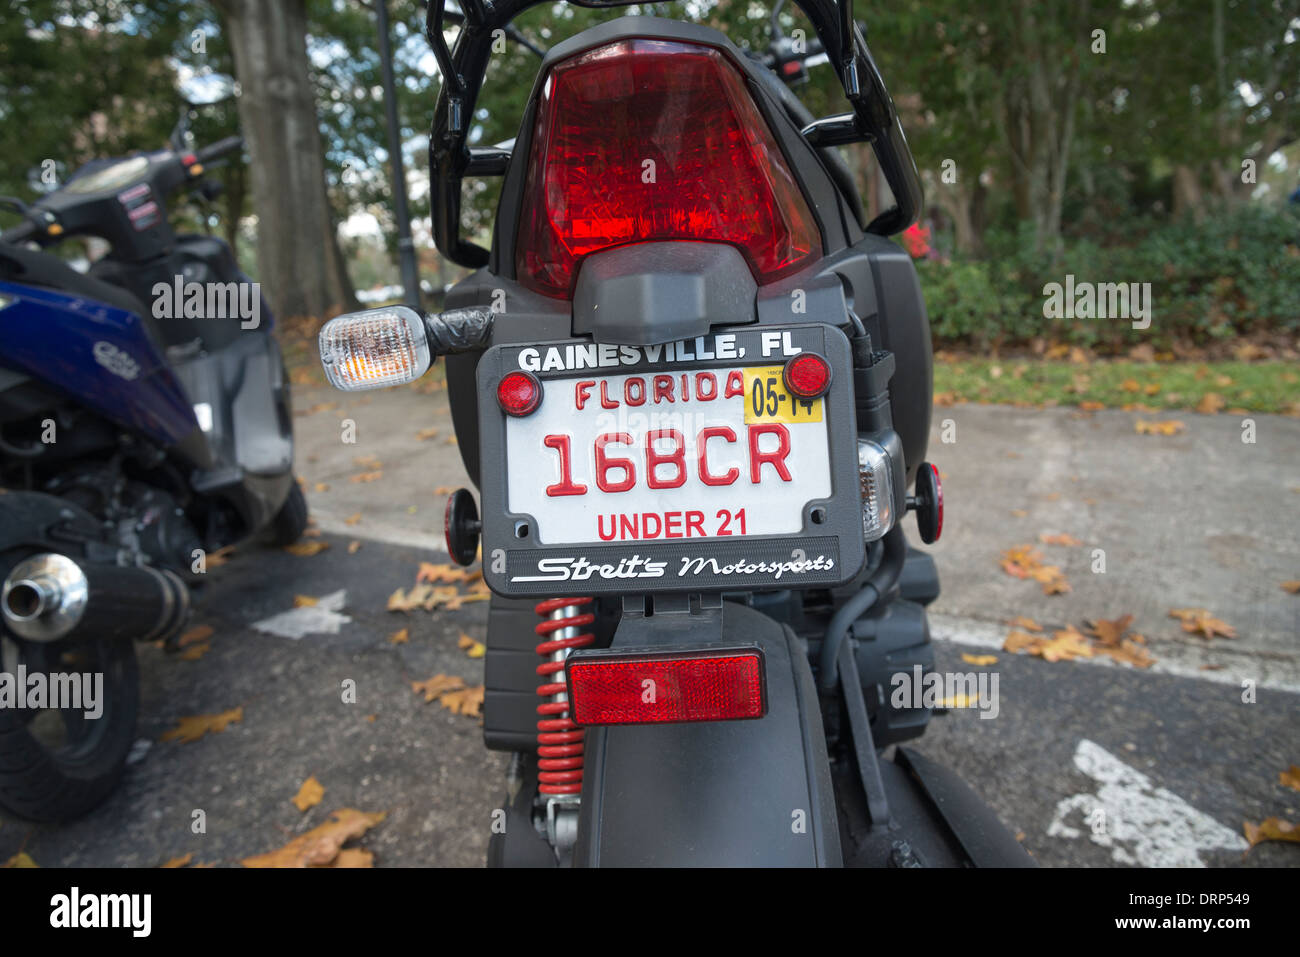 Motorcycle License Plate Stock Photos & Motorcycle License Plate ...